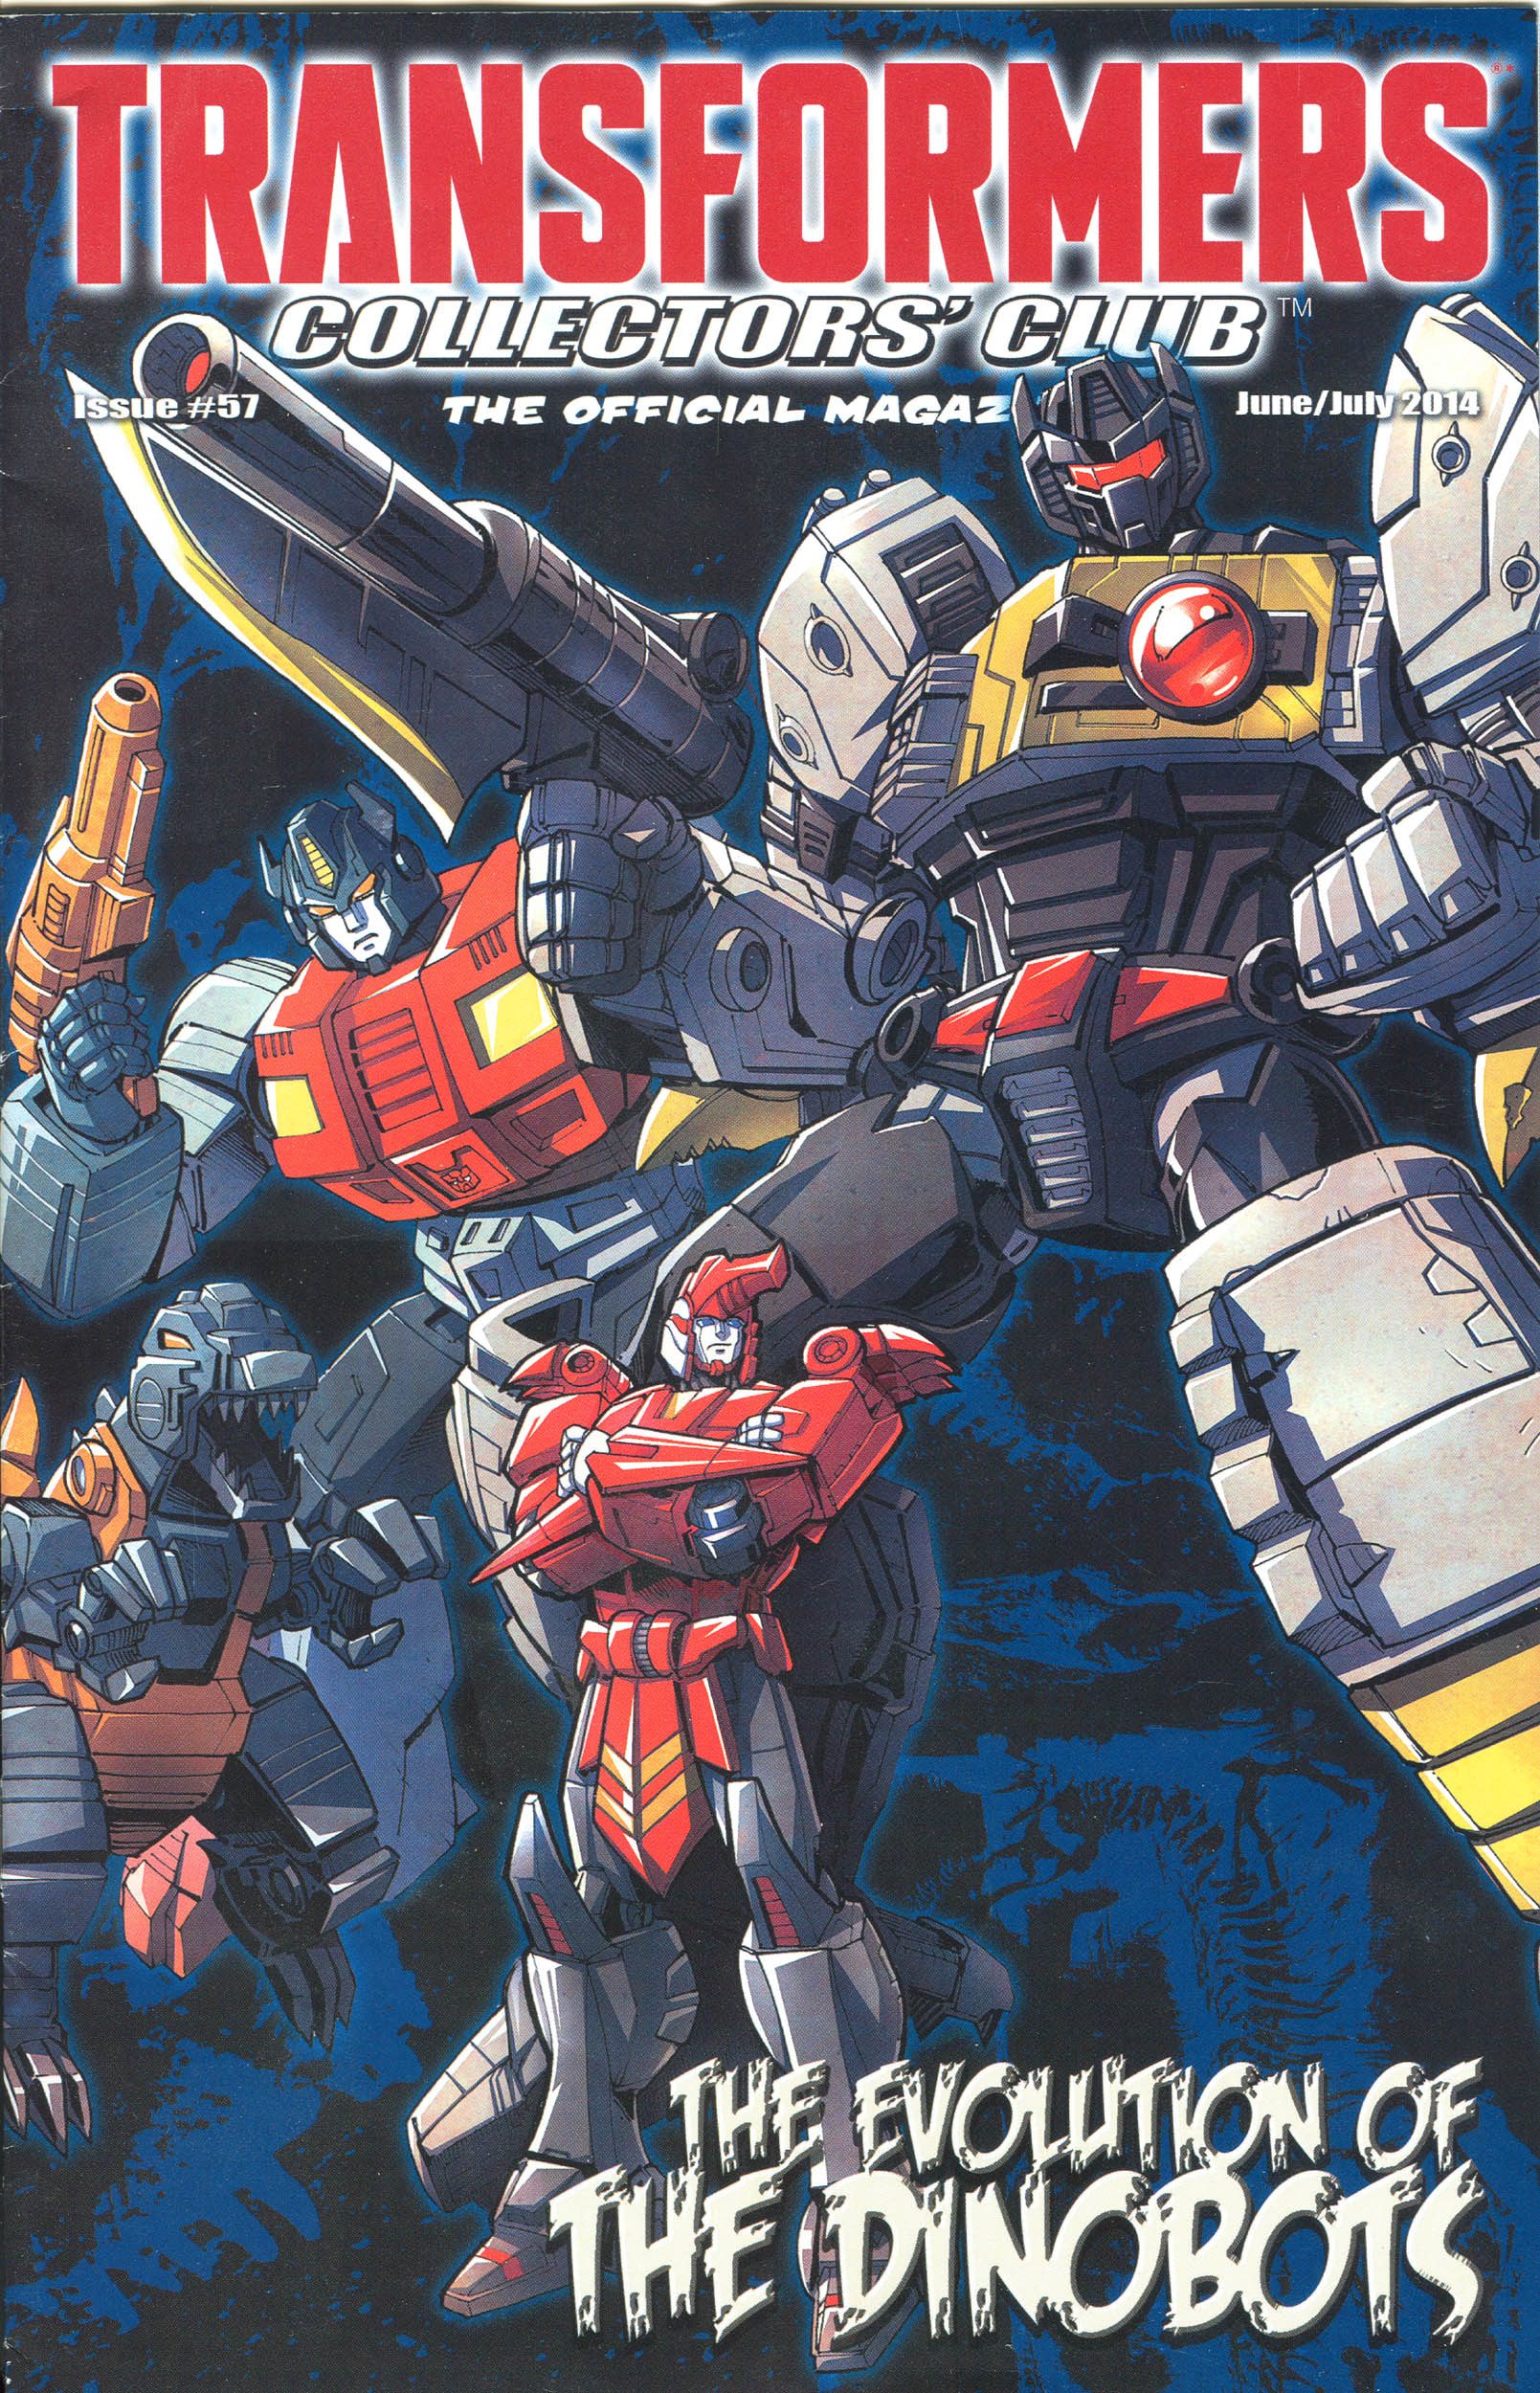 Read online Transformers: Collectors' Club comic -  Issue #57 - 1